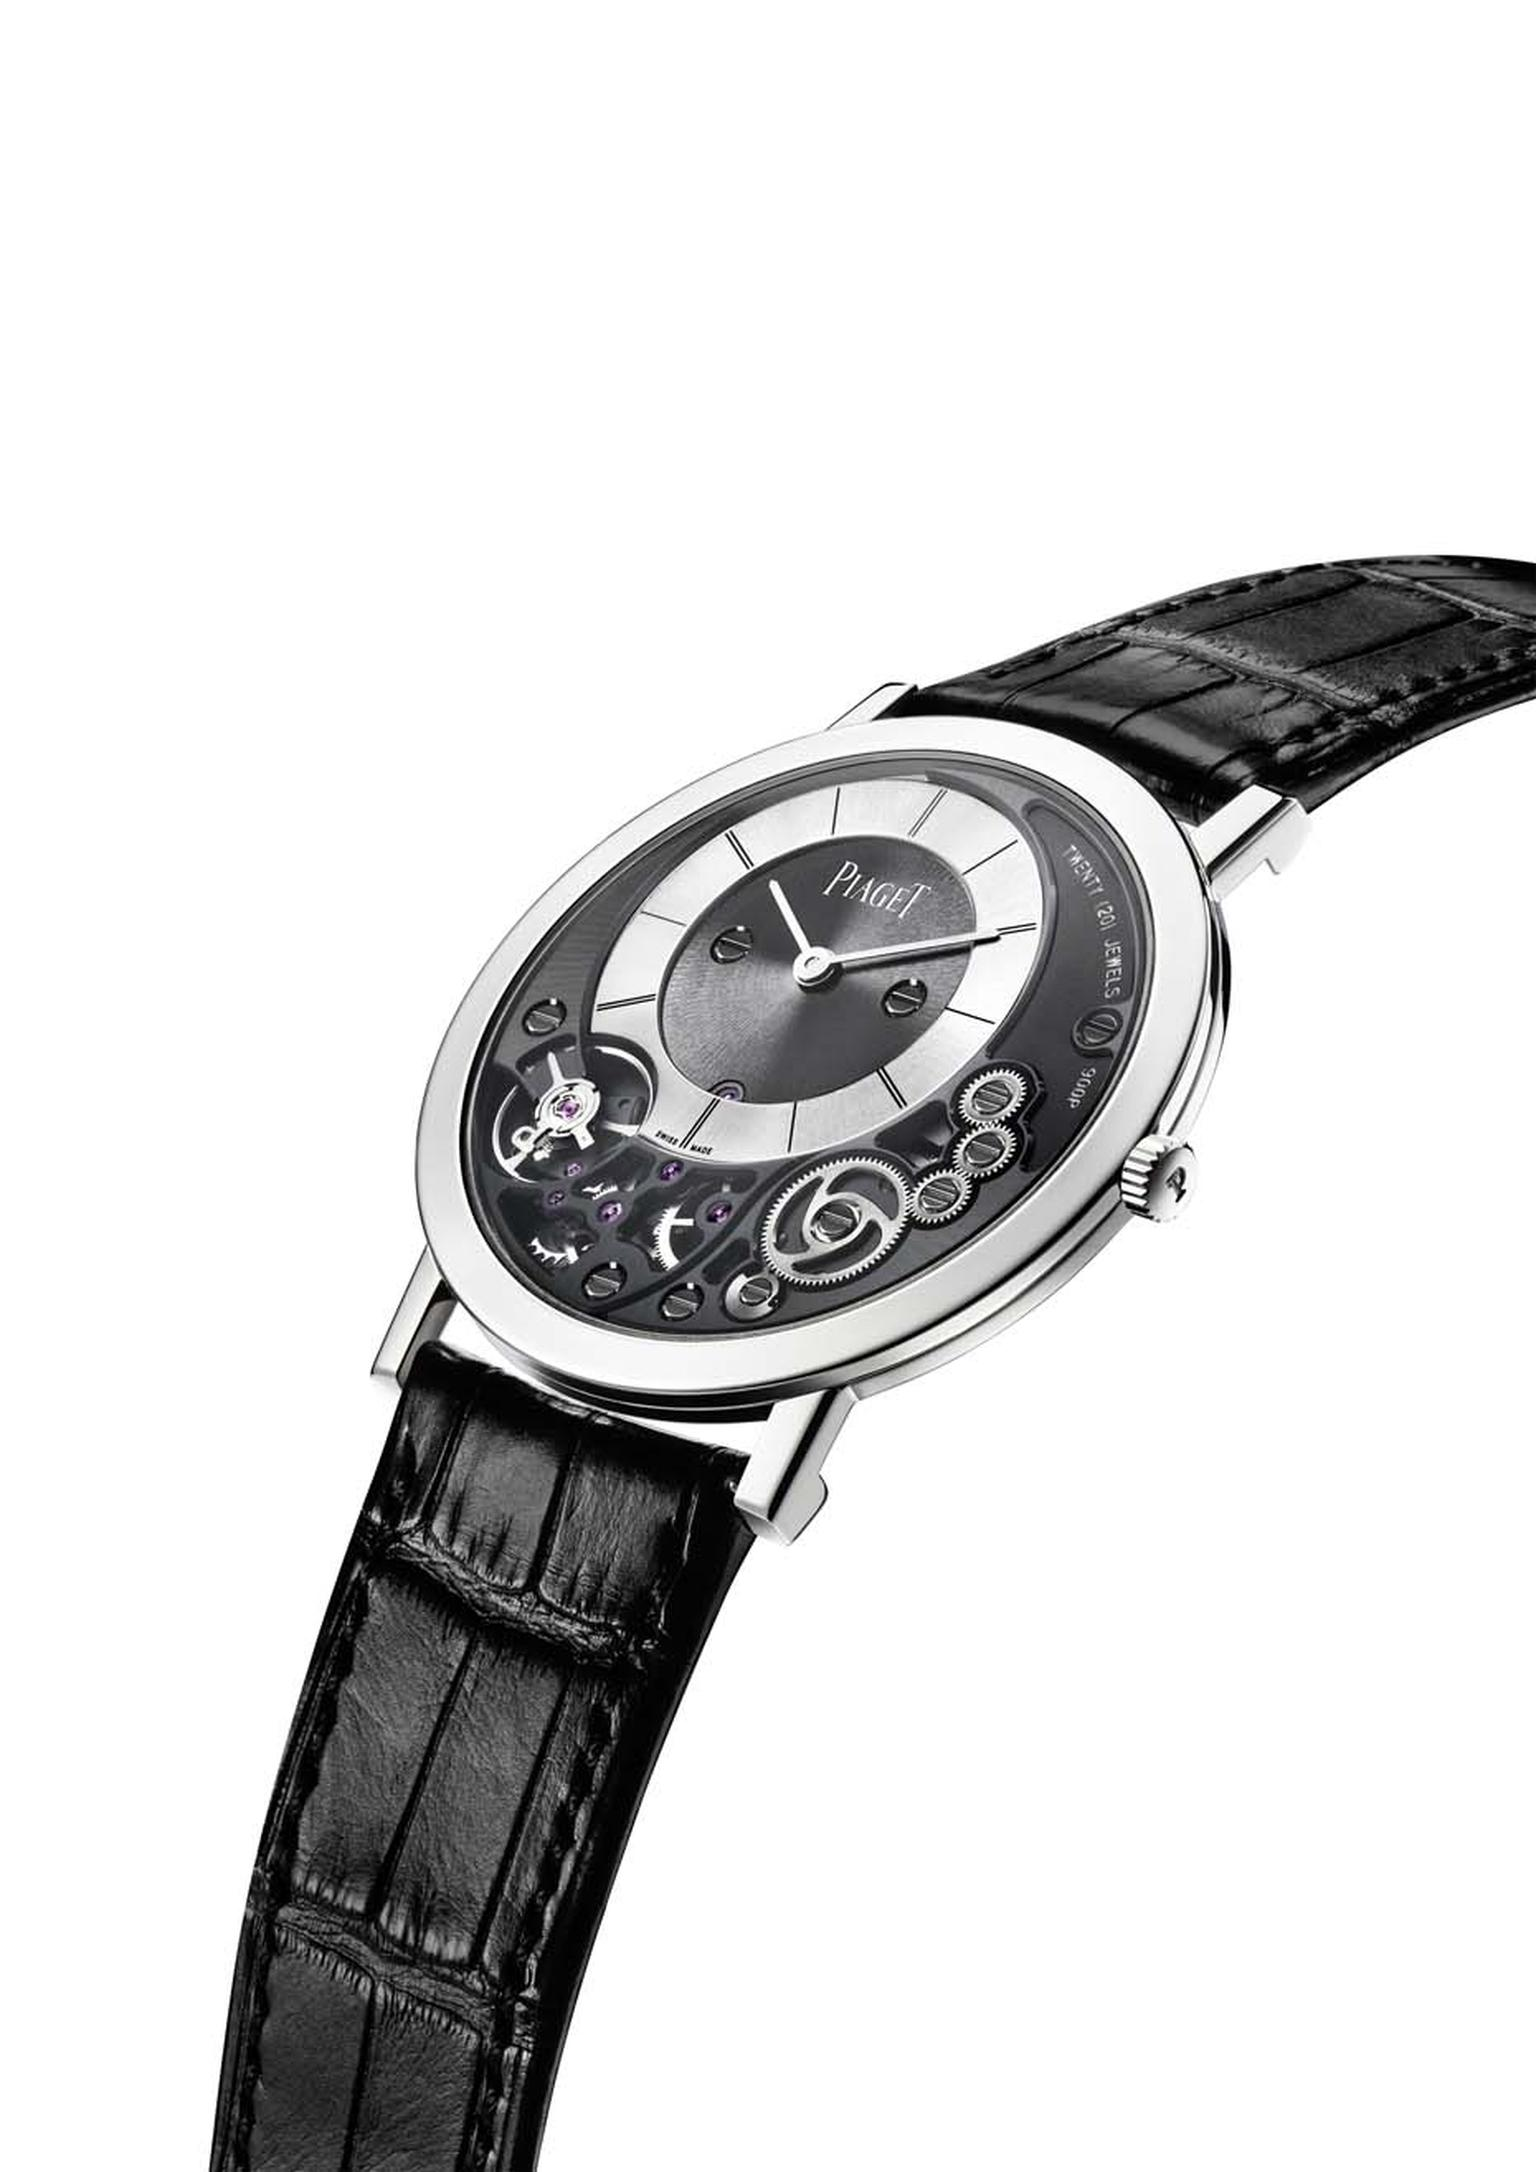 By merging the calibre with the case, Piaget has created the Altiplano 38mm 900P, the world's thinnest watch to date.